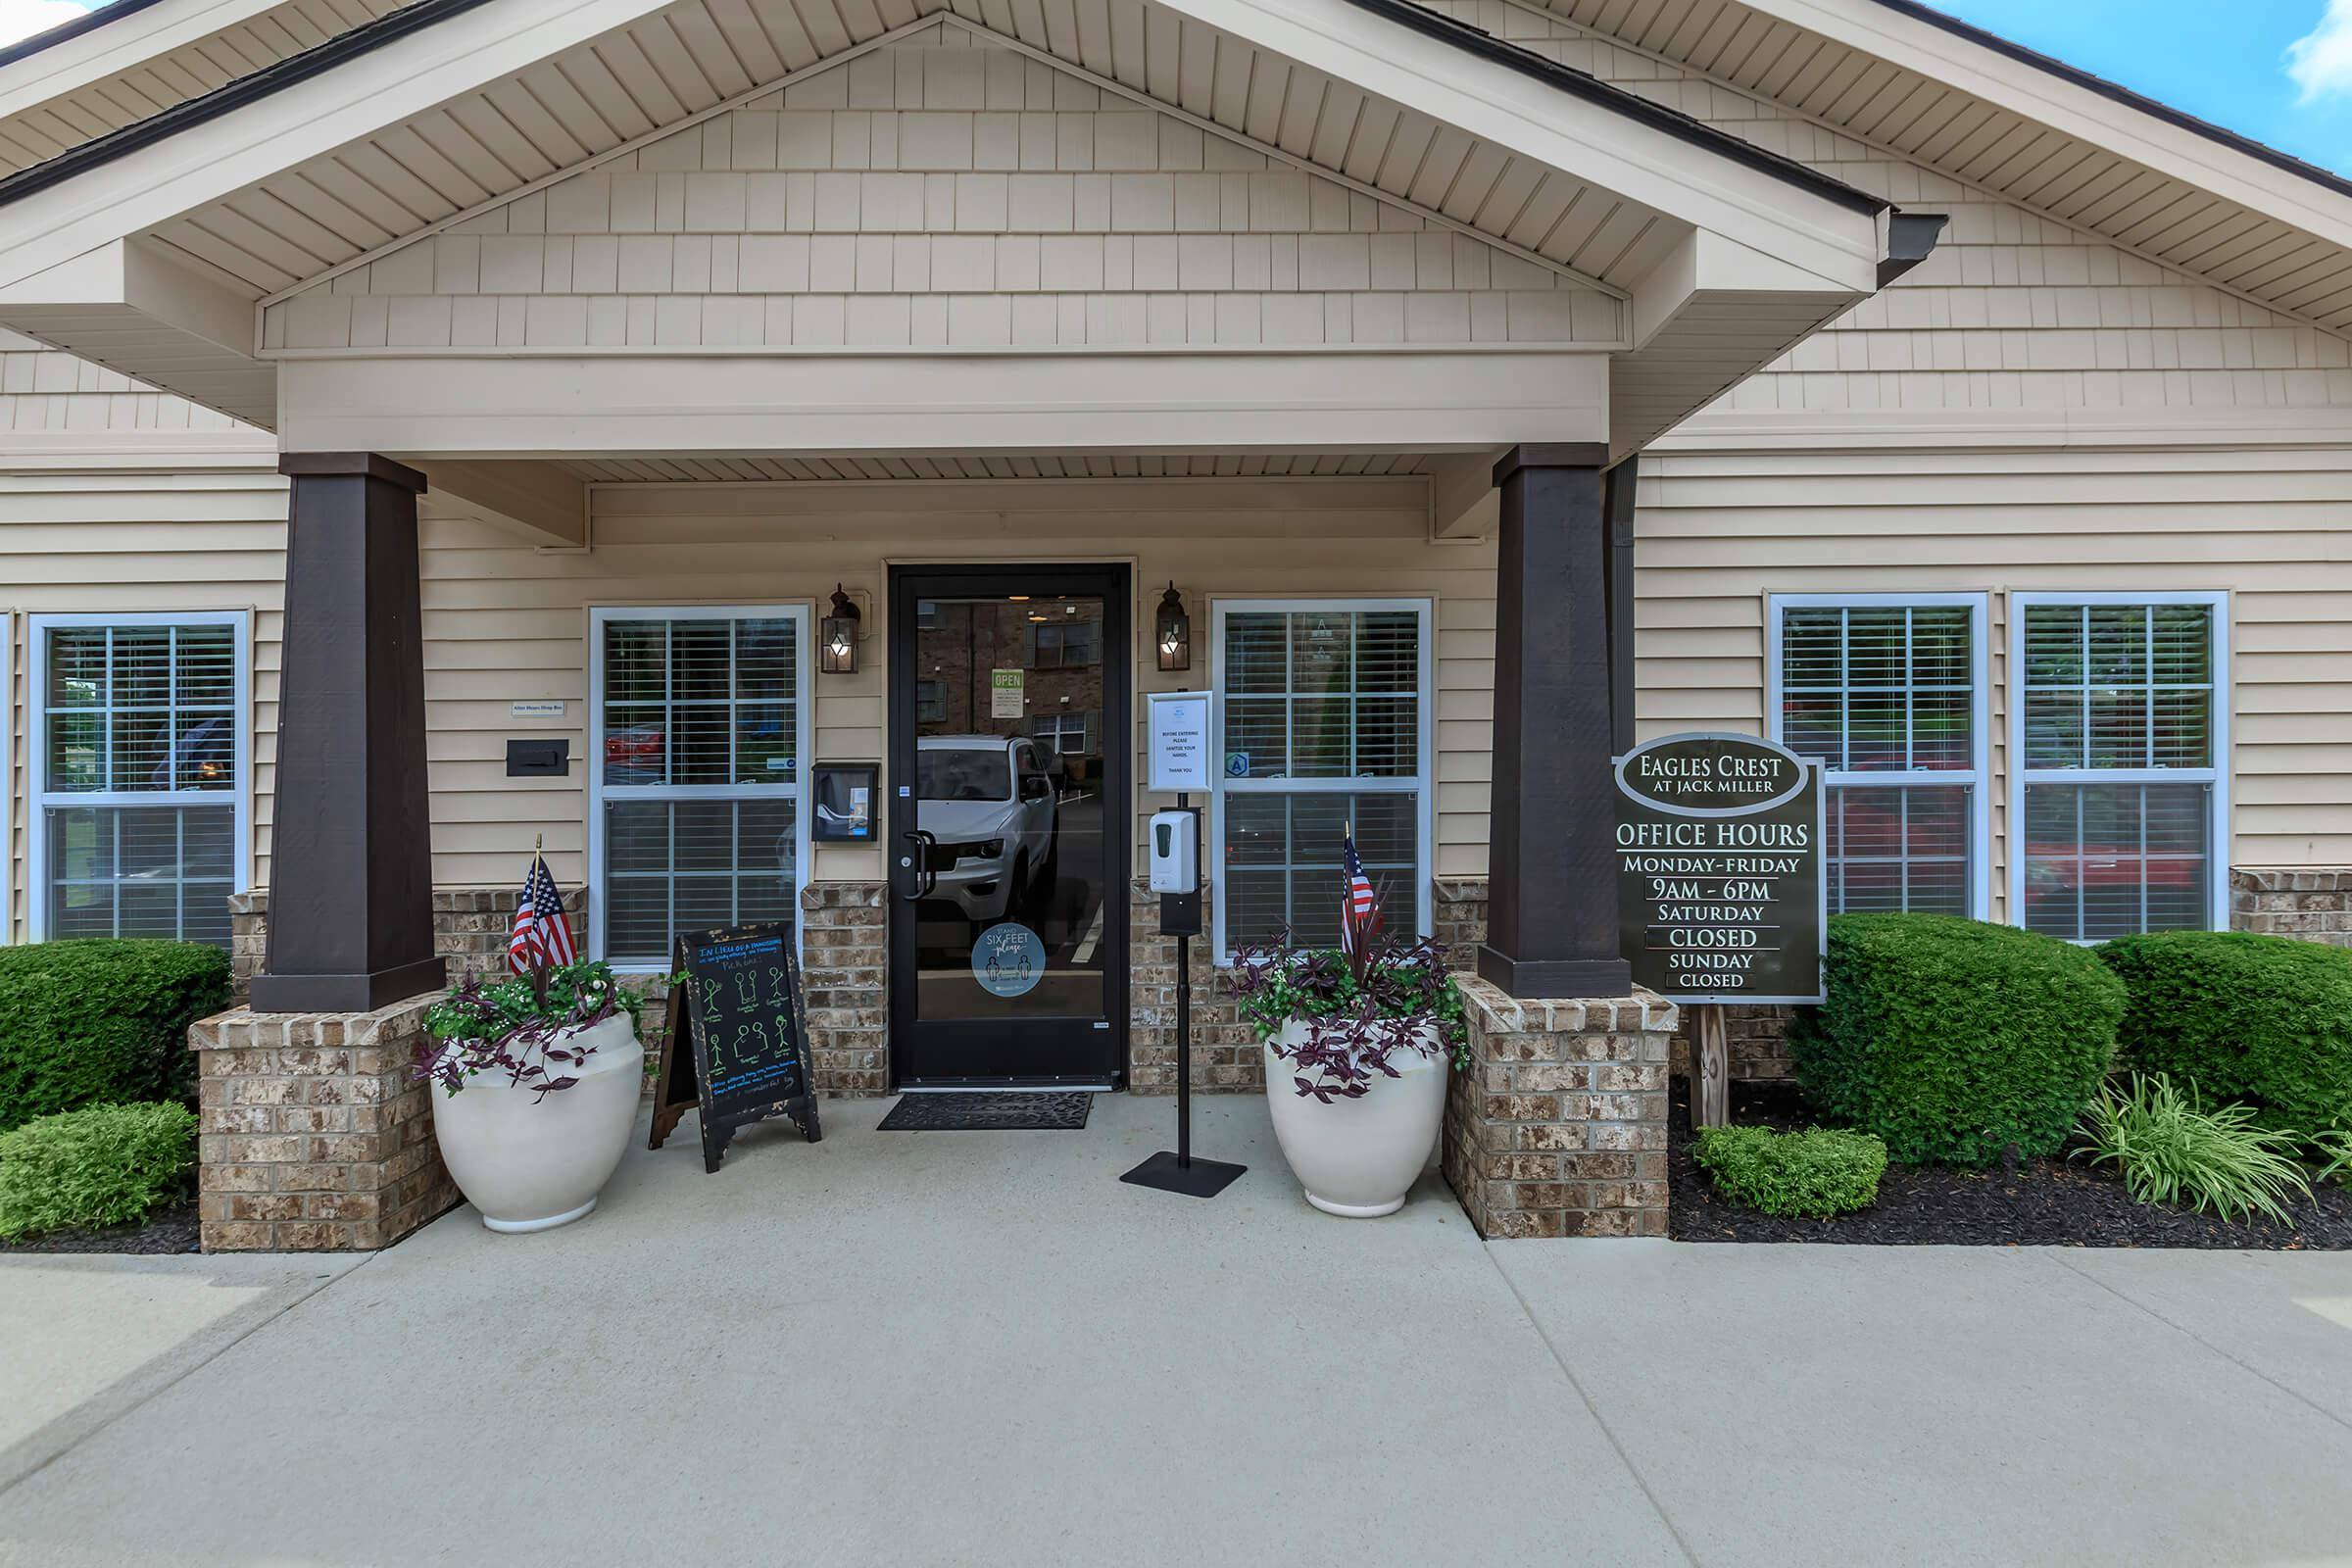 Visit our leasing office here at Eagles Crest at Jack Miller in Clarksville, Tennessee